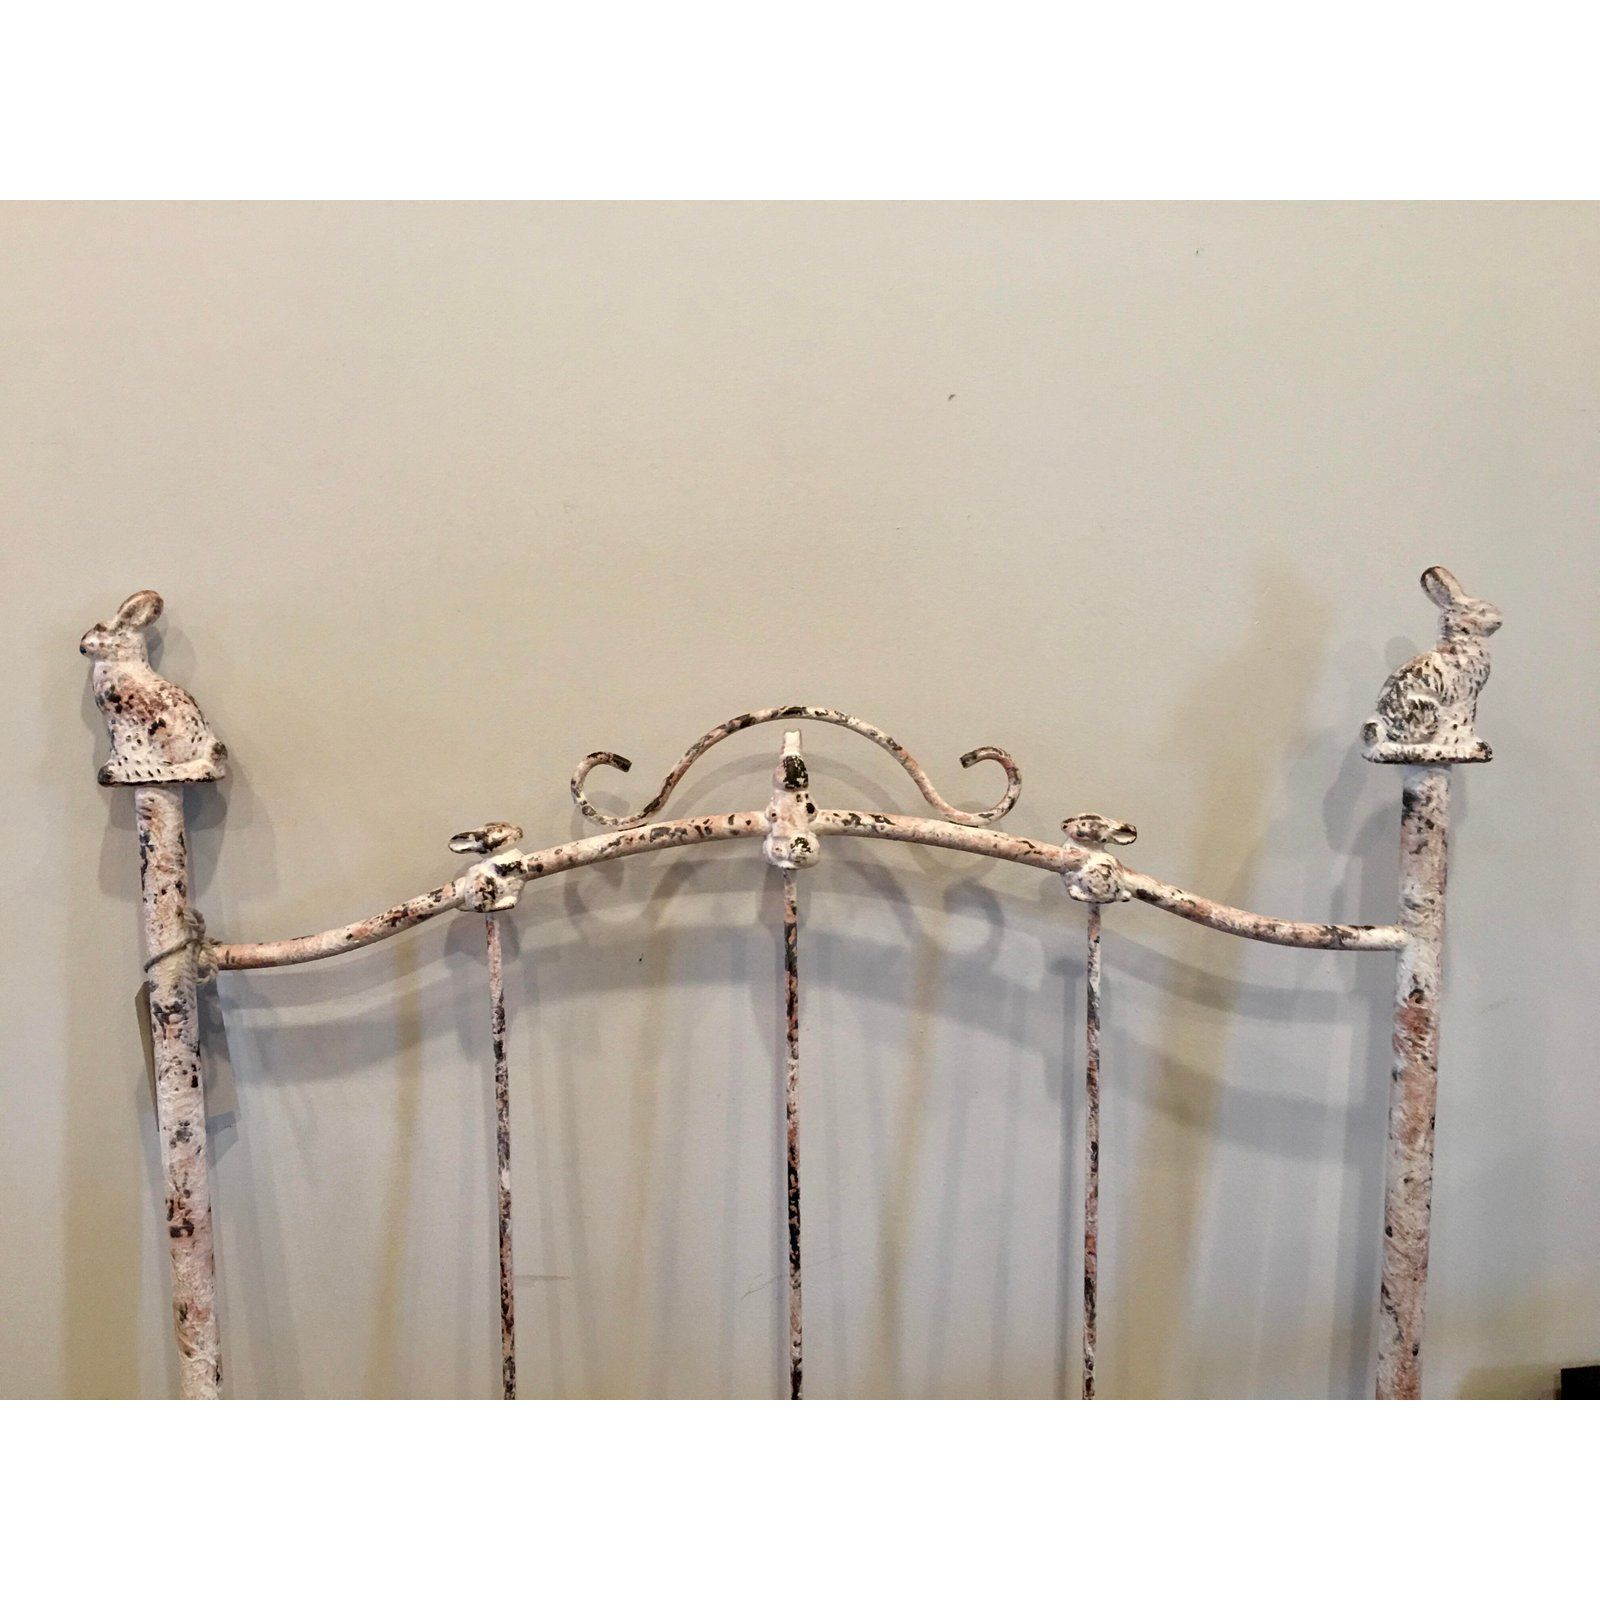 Corsican Antique White Wrought Iron Twin Bunny Bed Headboard With